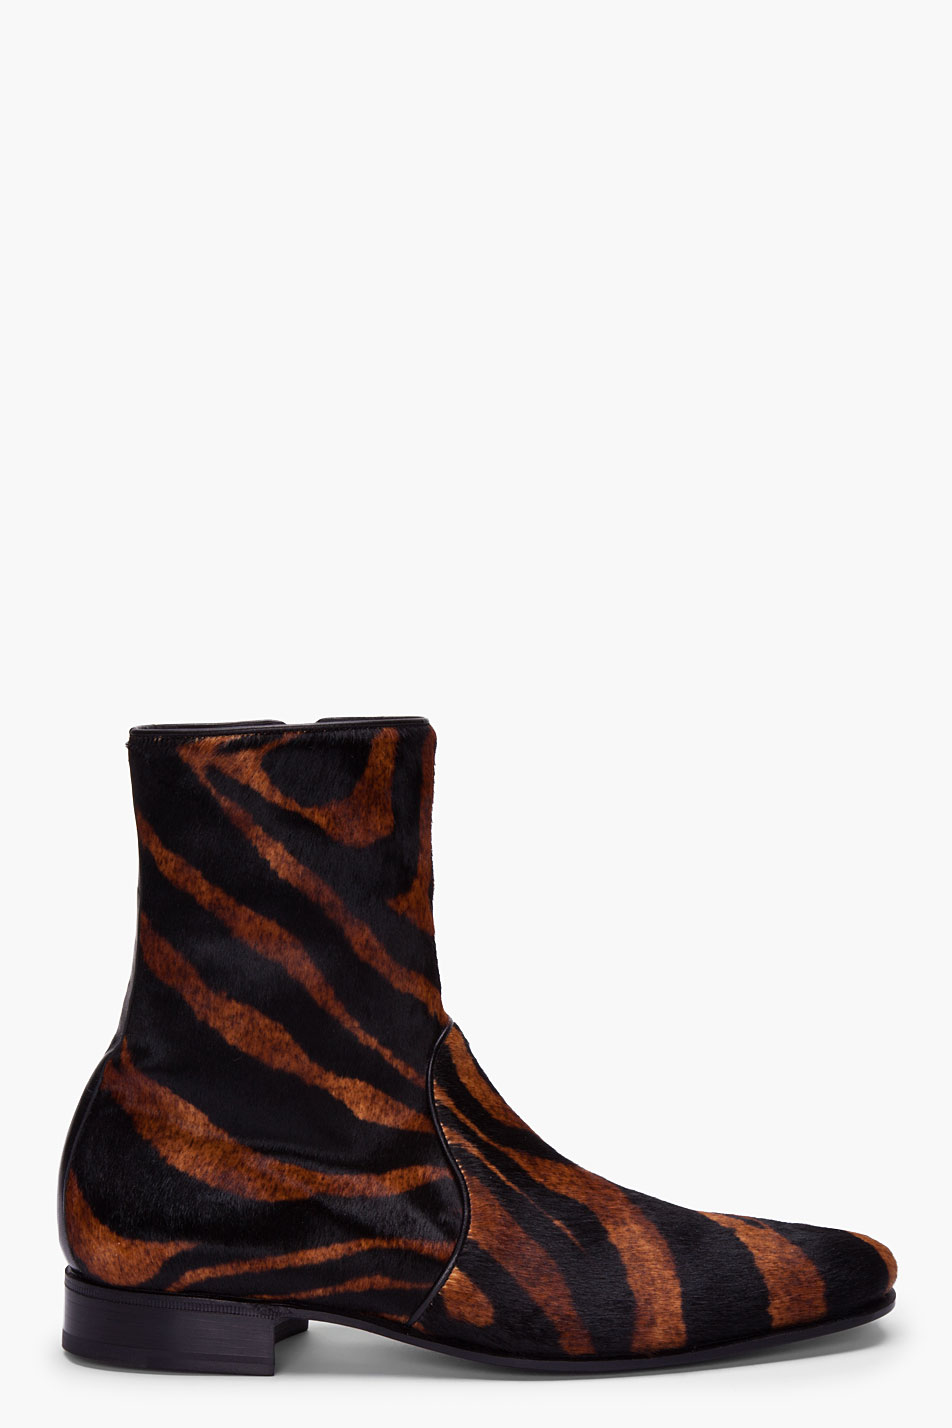 Pierre Hardy Tiger Print Calfhair Boots For Men Lyst